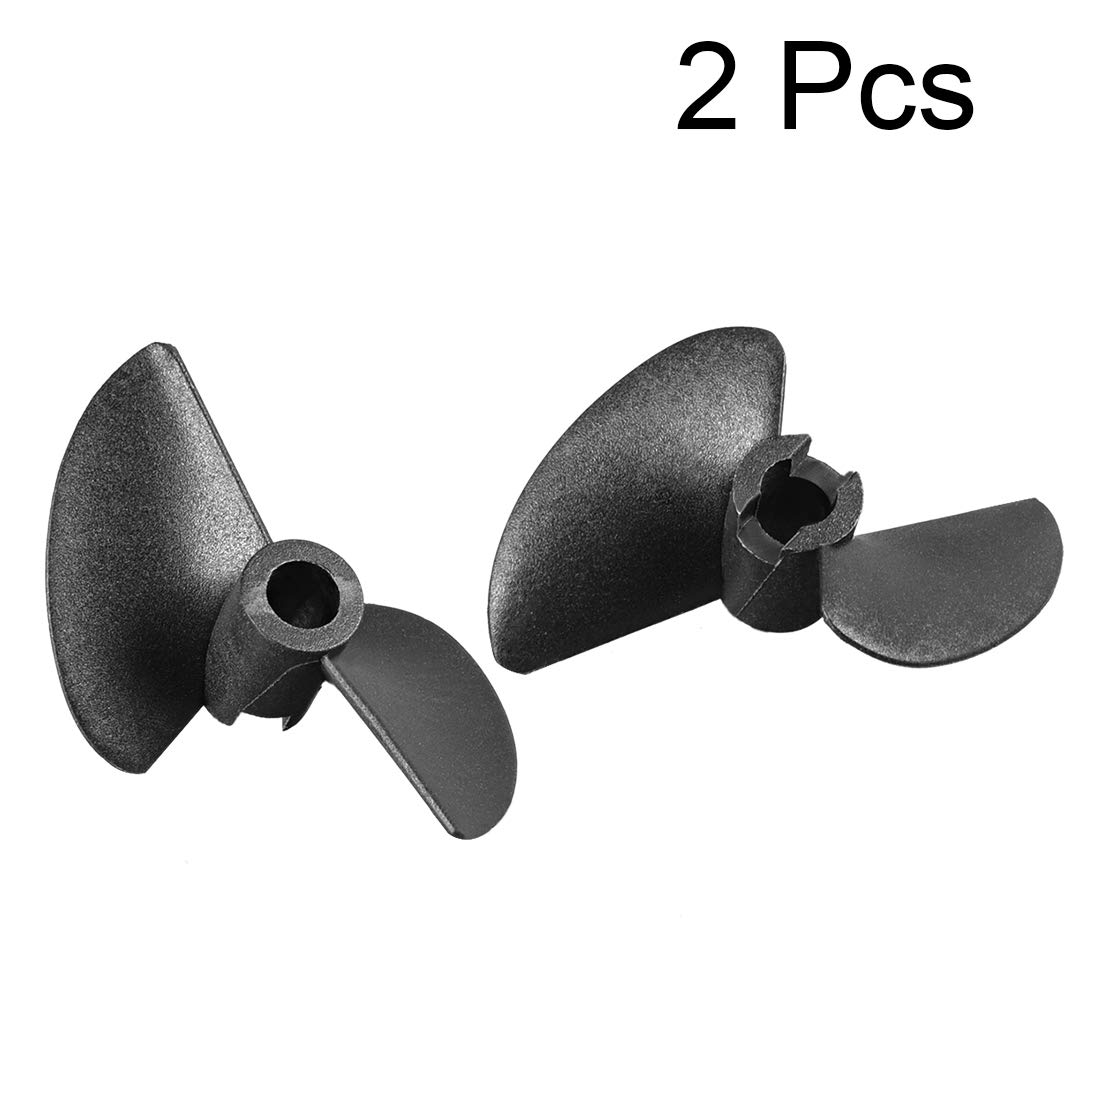 P40D52 3 Blades RC Boat Propeller Paddle for Brushless Motor uxcell a13090200ux0132